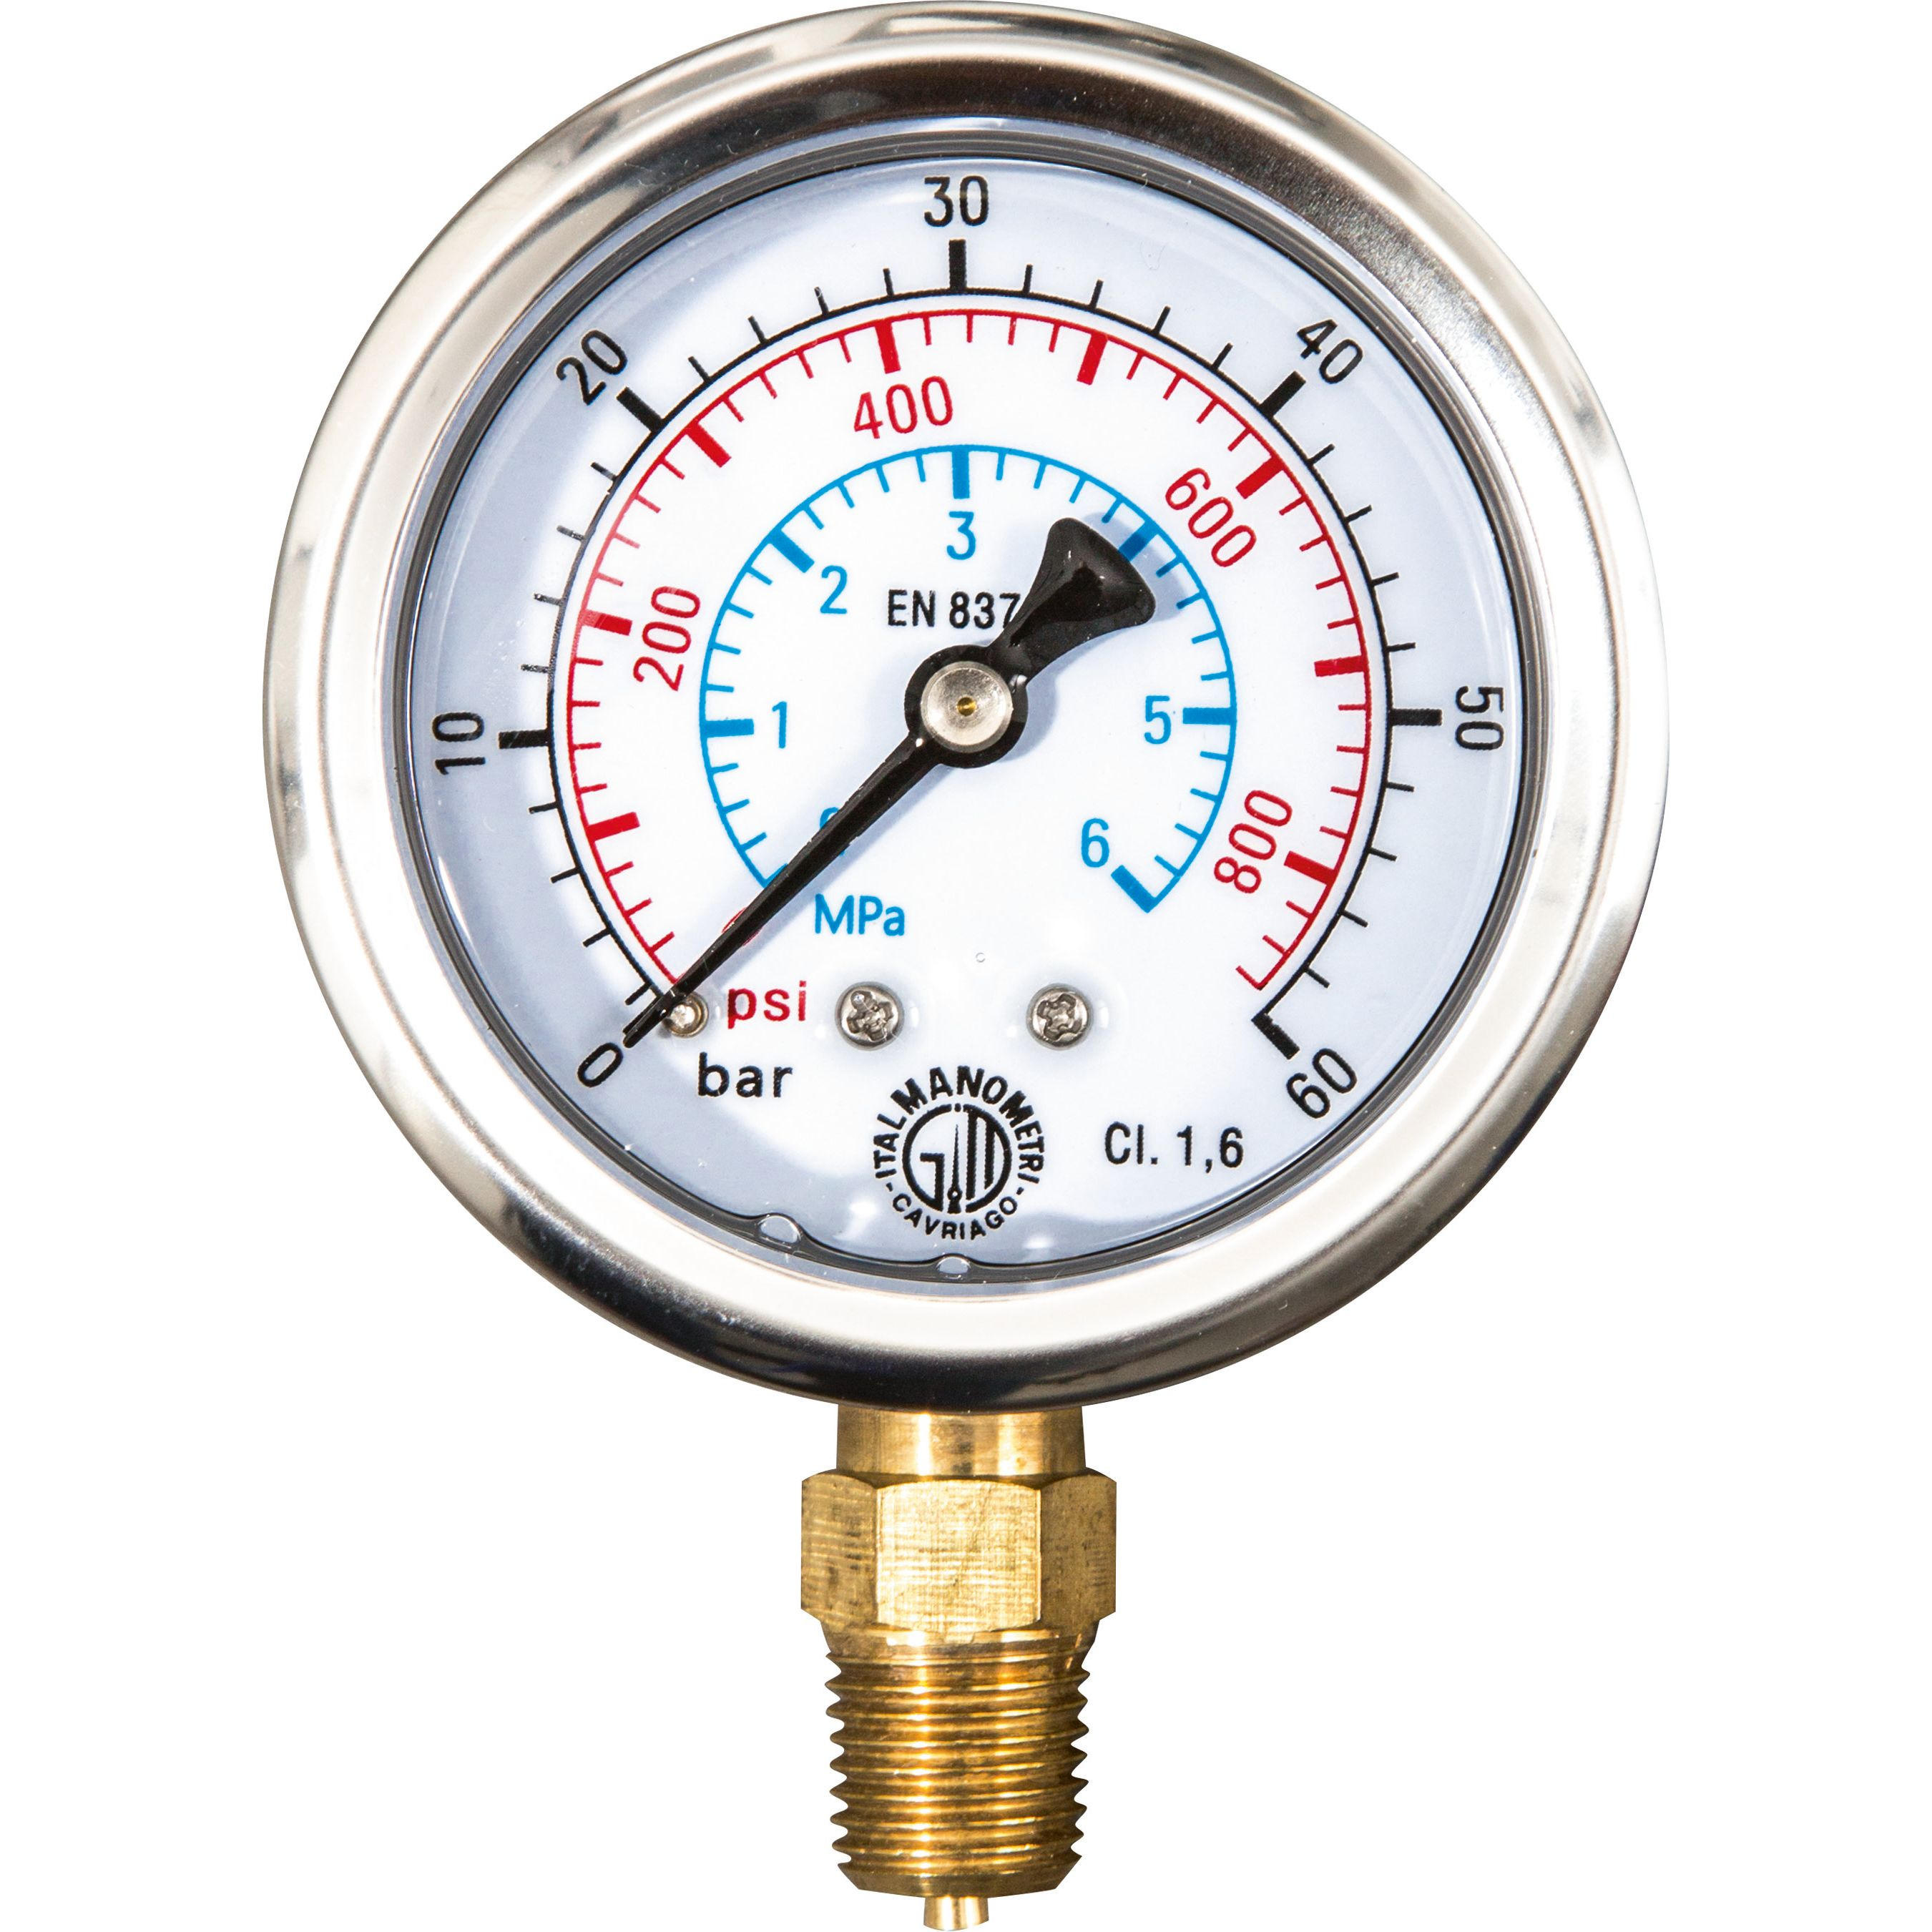 REMS 115140 Manometer för REMS Multi-Push 60 bar